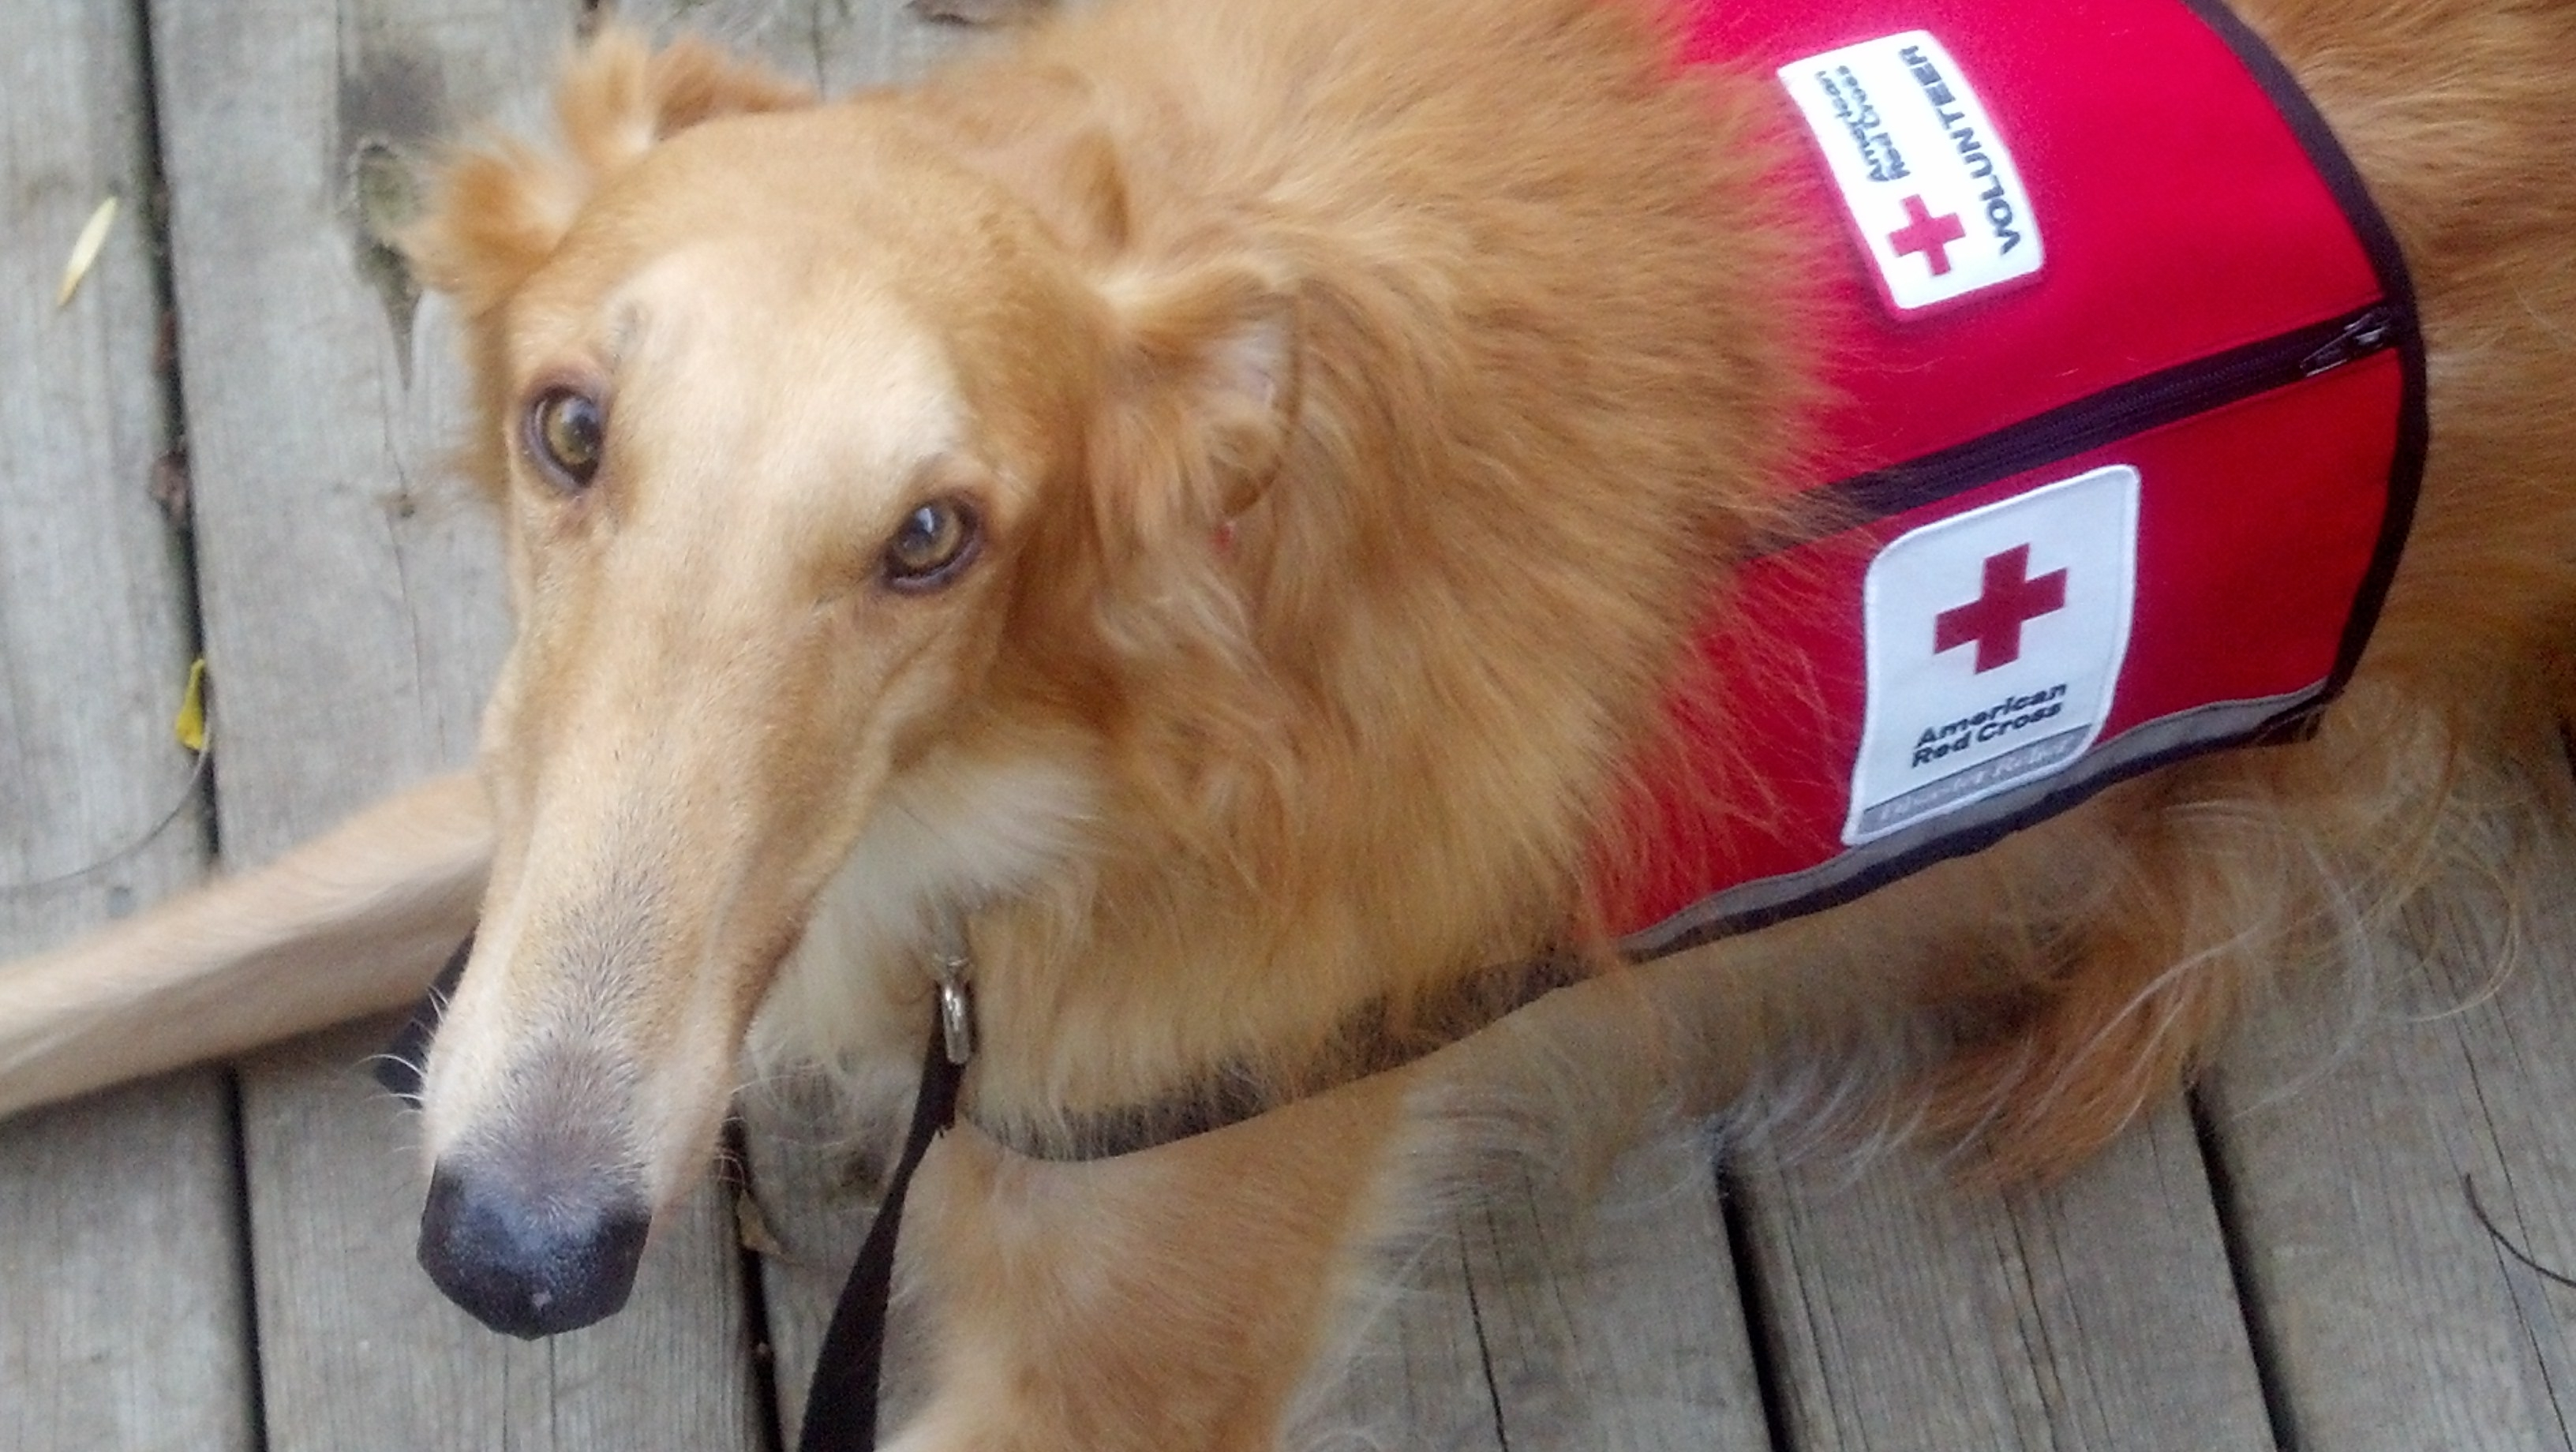 West michigan introduces our furry friend american red cross of merlin2 xflitez Choice Image